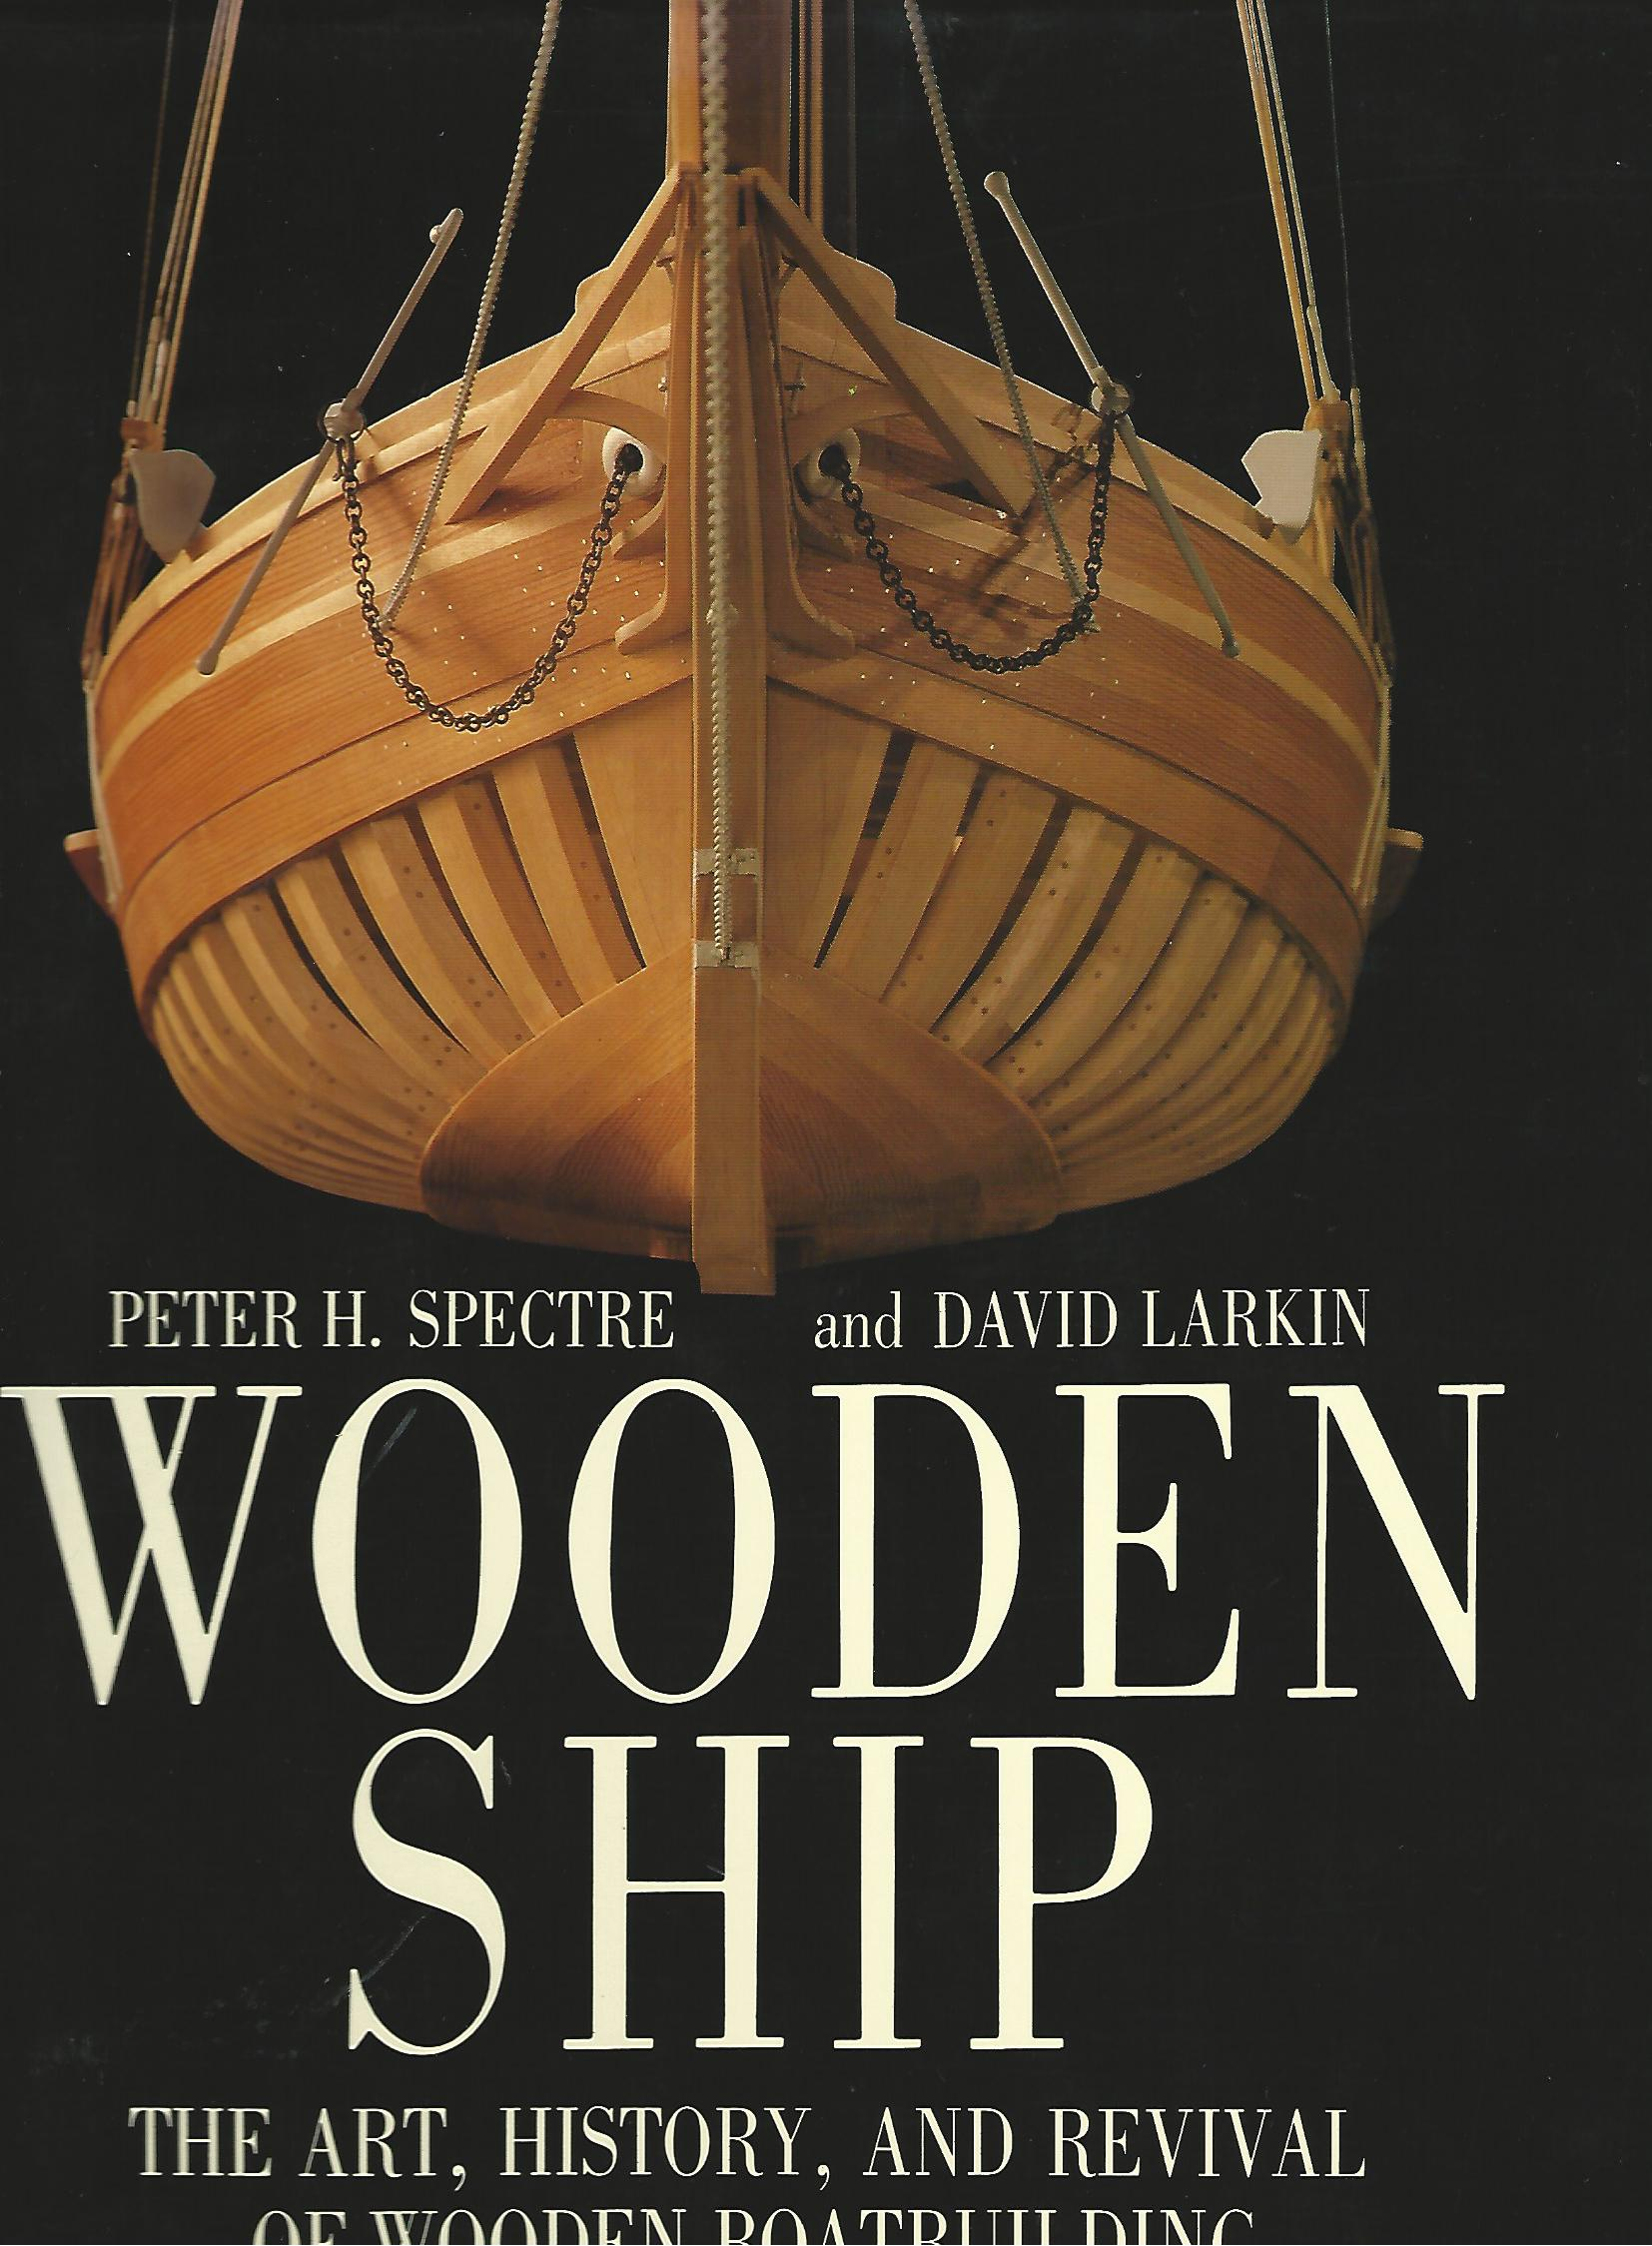 Image for Wooden Ship: The Art, History and Revival of Wooden Boatbuilding